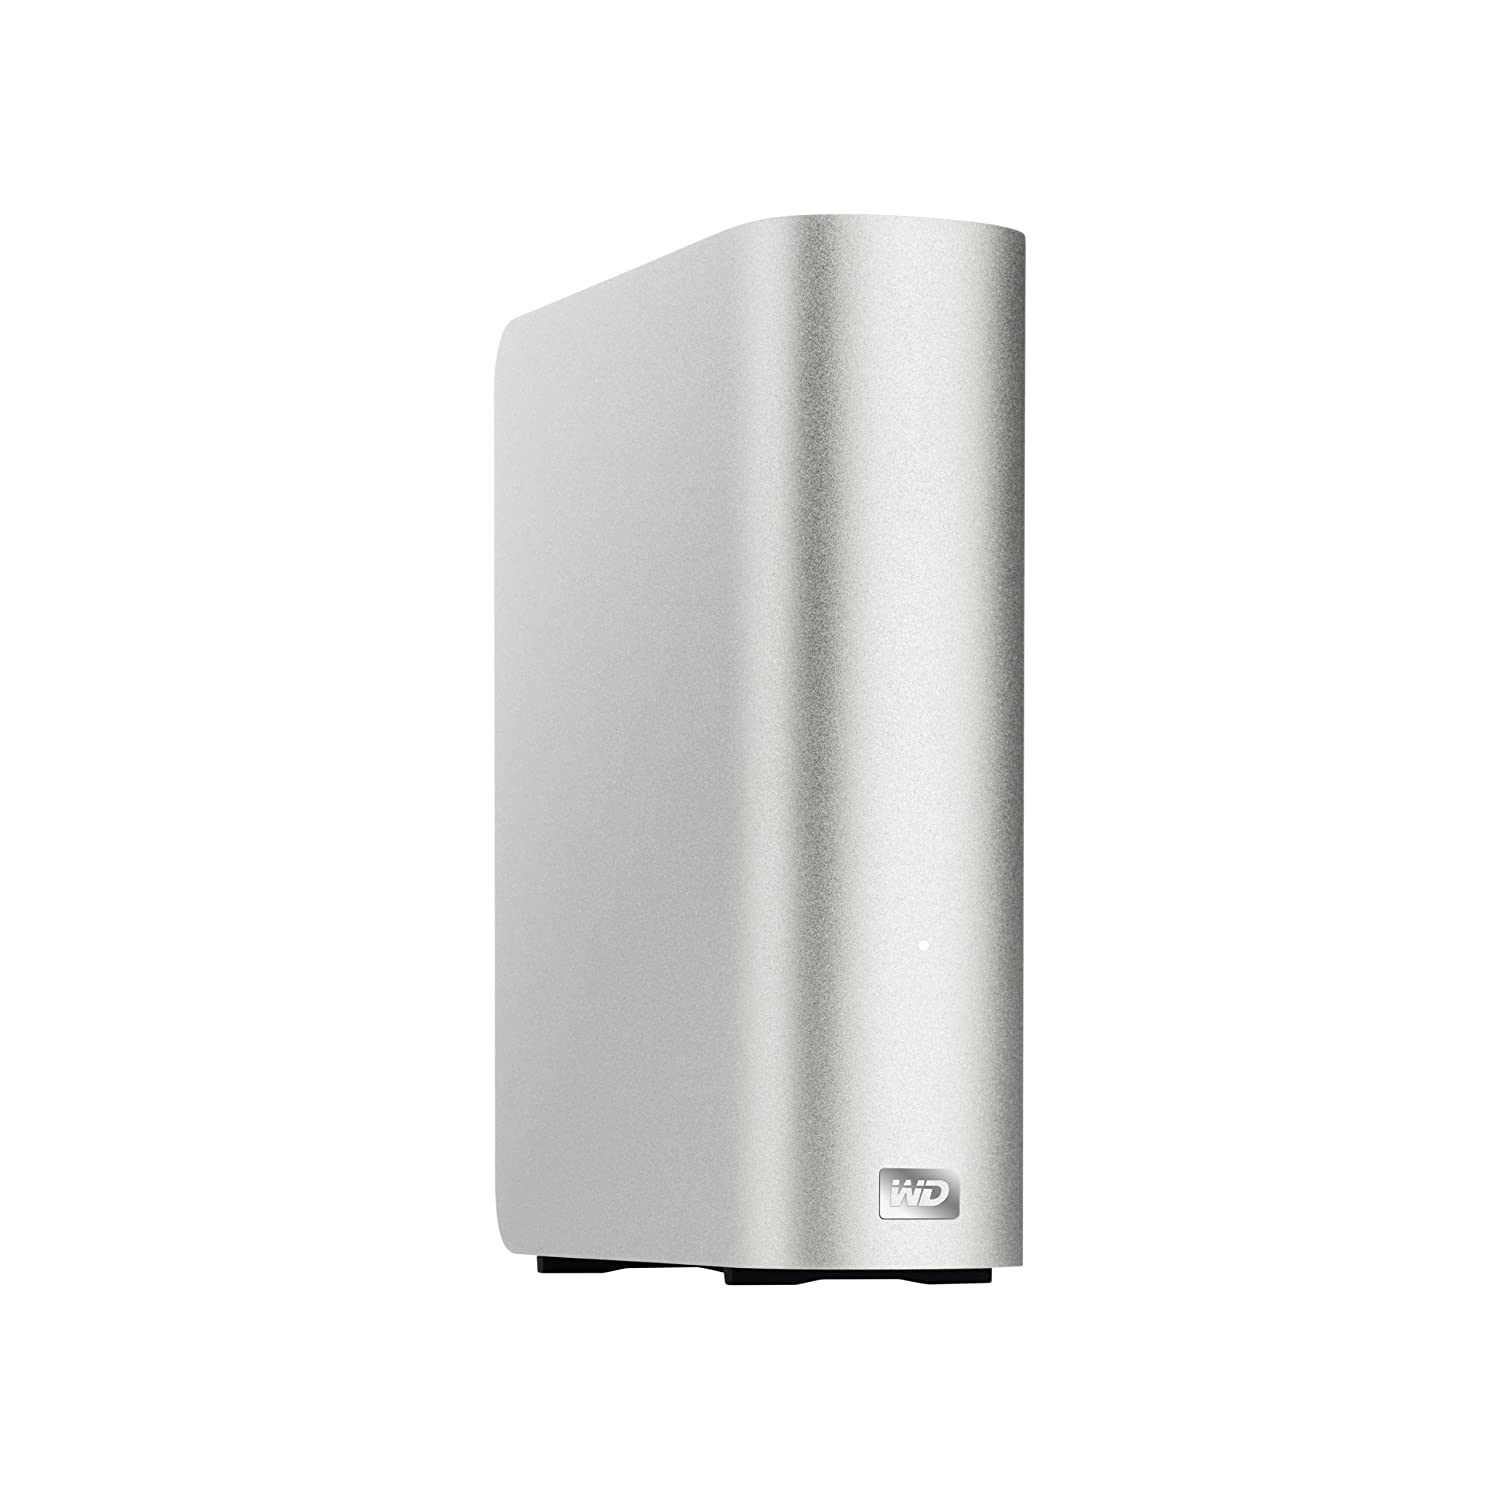 Amazon.com: WD My Book Studio 2 TB FireWire 800 External Hard Drive ...